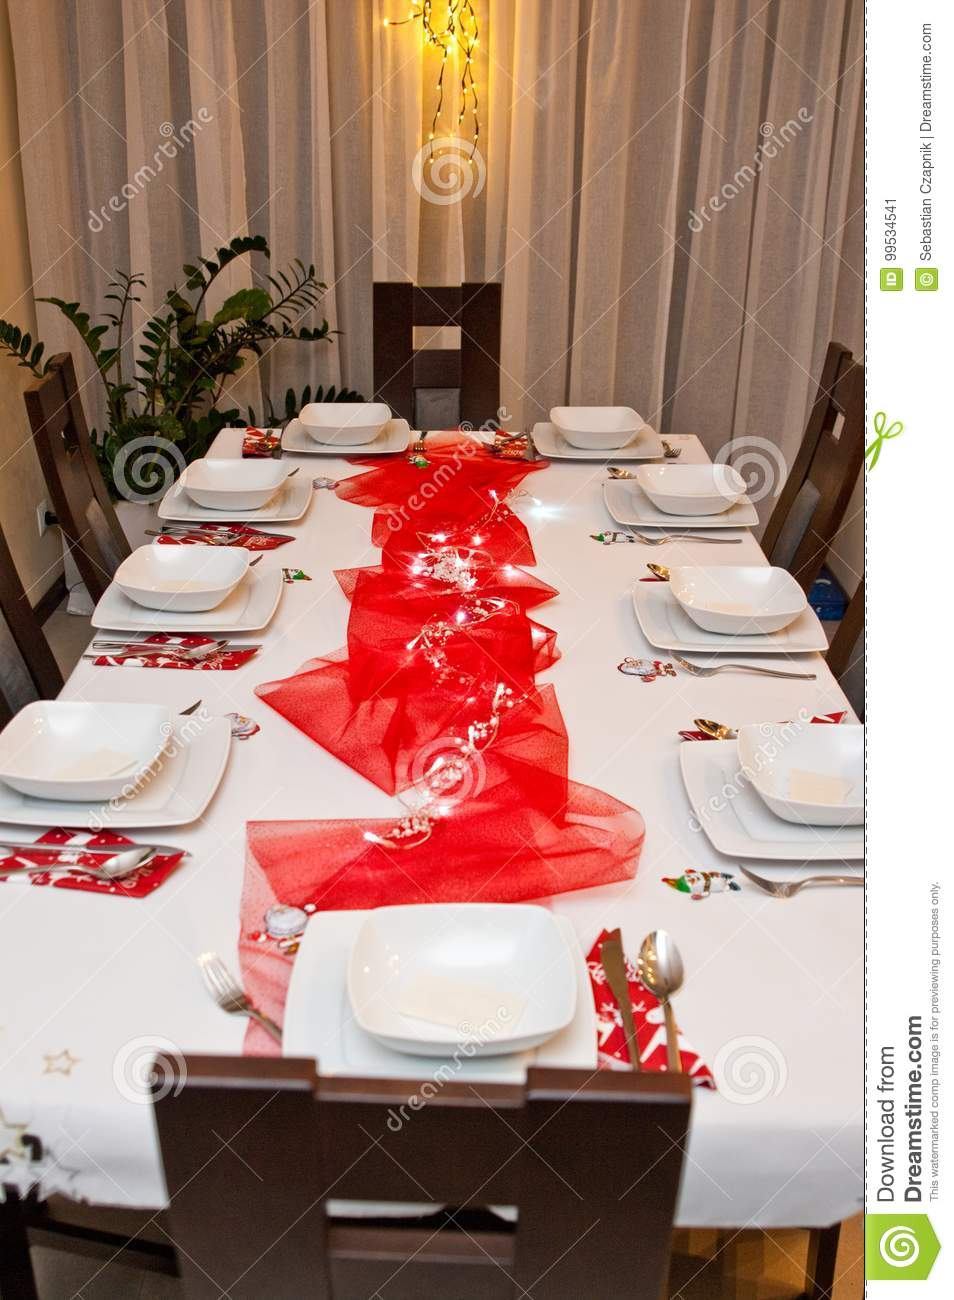 Christmas Table Setting With White Plates And Red Decorations Stock